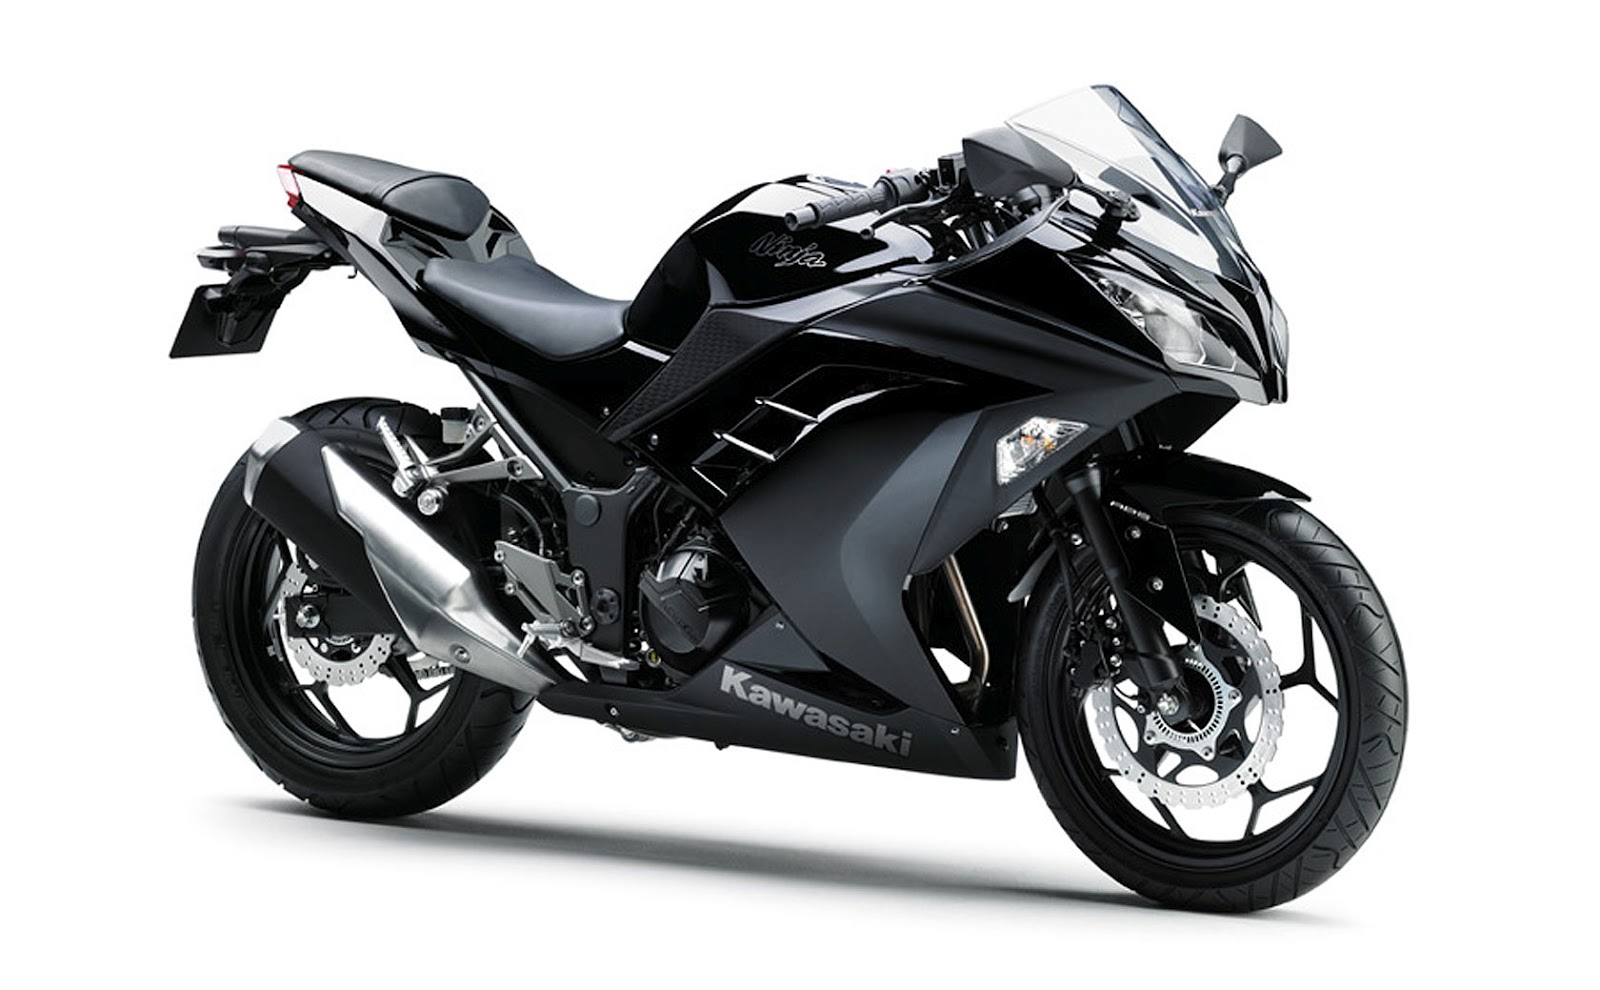 all about motorcycle Honda motorcycle & used motorcycle price list for sale in the philippines 2018 check all honda motorcycles, the latest prices and the lowest price list in pricepricecom.